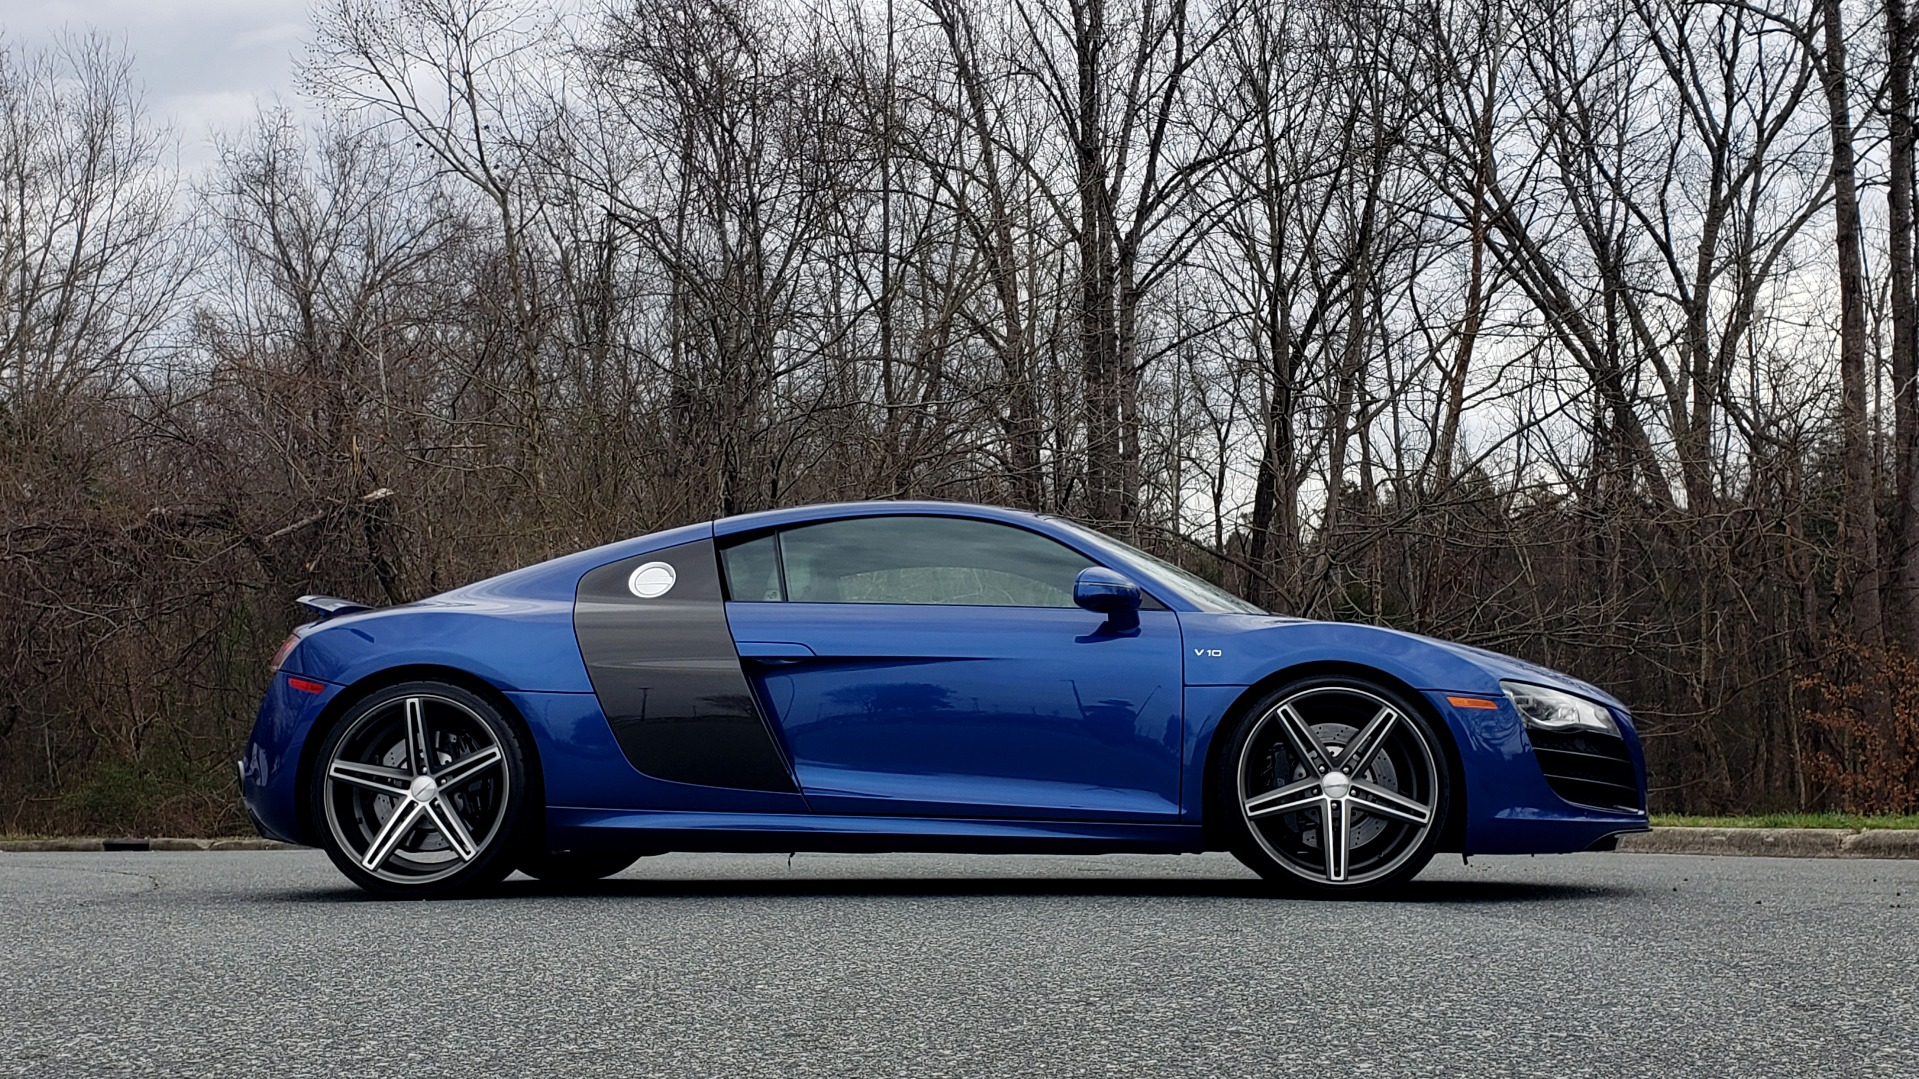 Used 2010 Audi R8 5.2L V10 / AWD / NAV / B&O SND / HTD STS / CUSTOM EXH & WHEELS for sale $78,000 at Formula Imports in Charlotte NC 28227 7